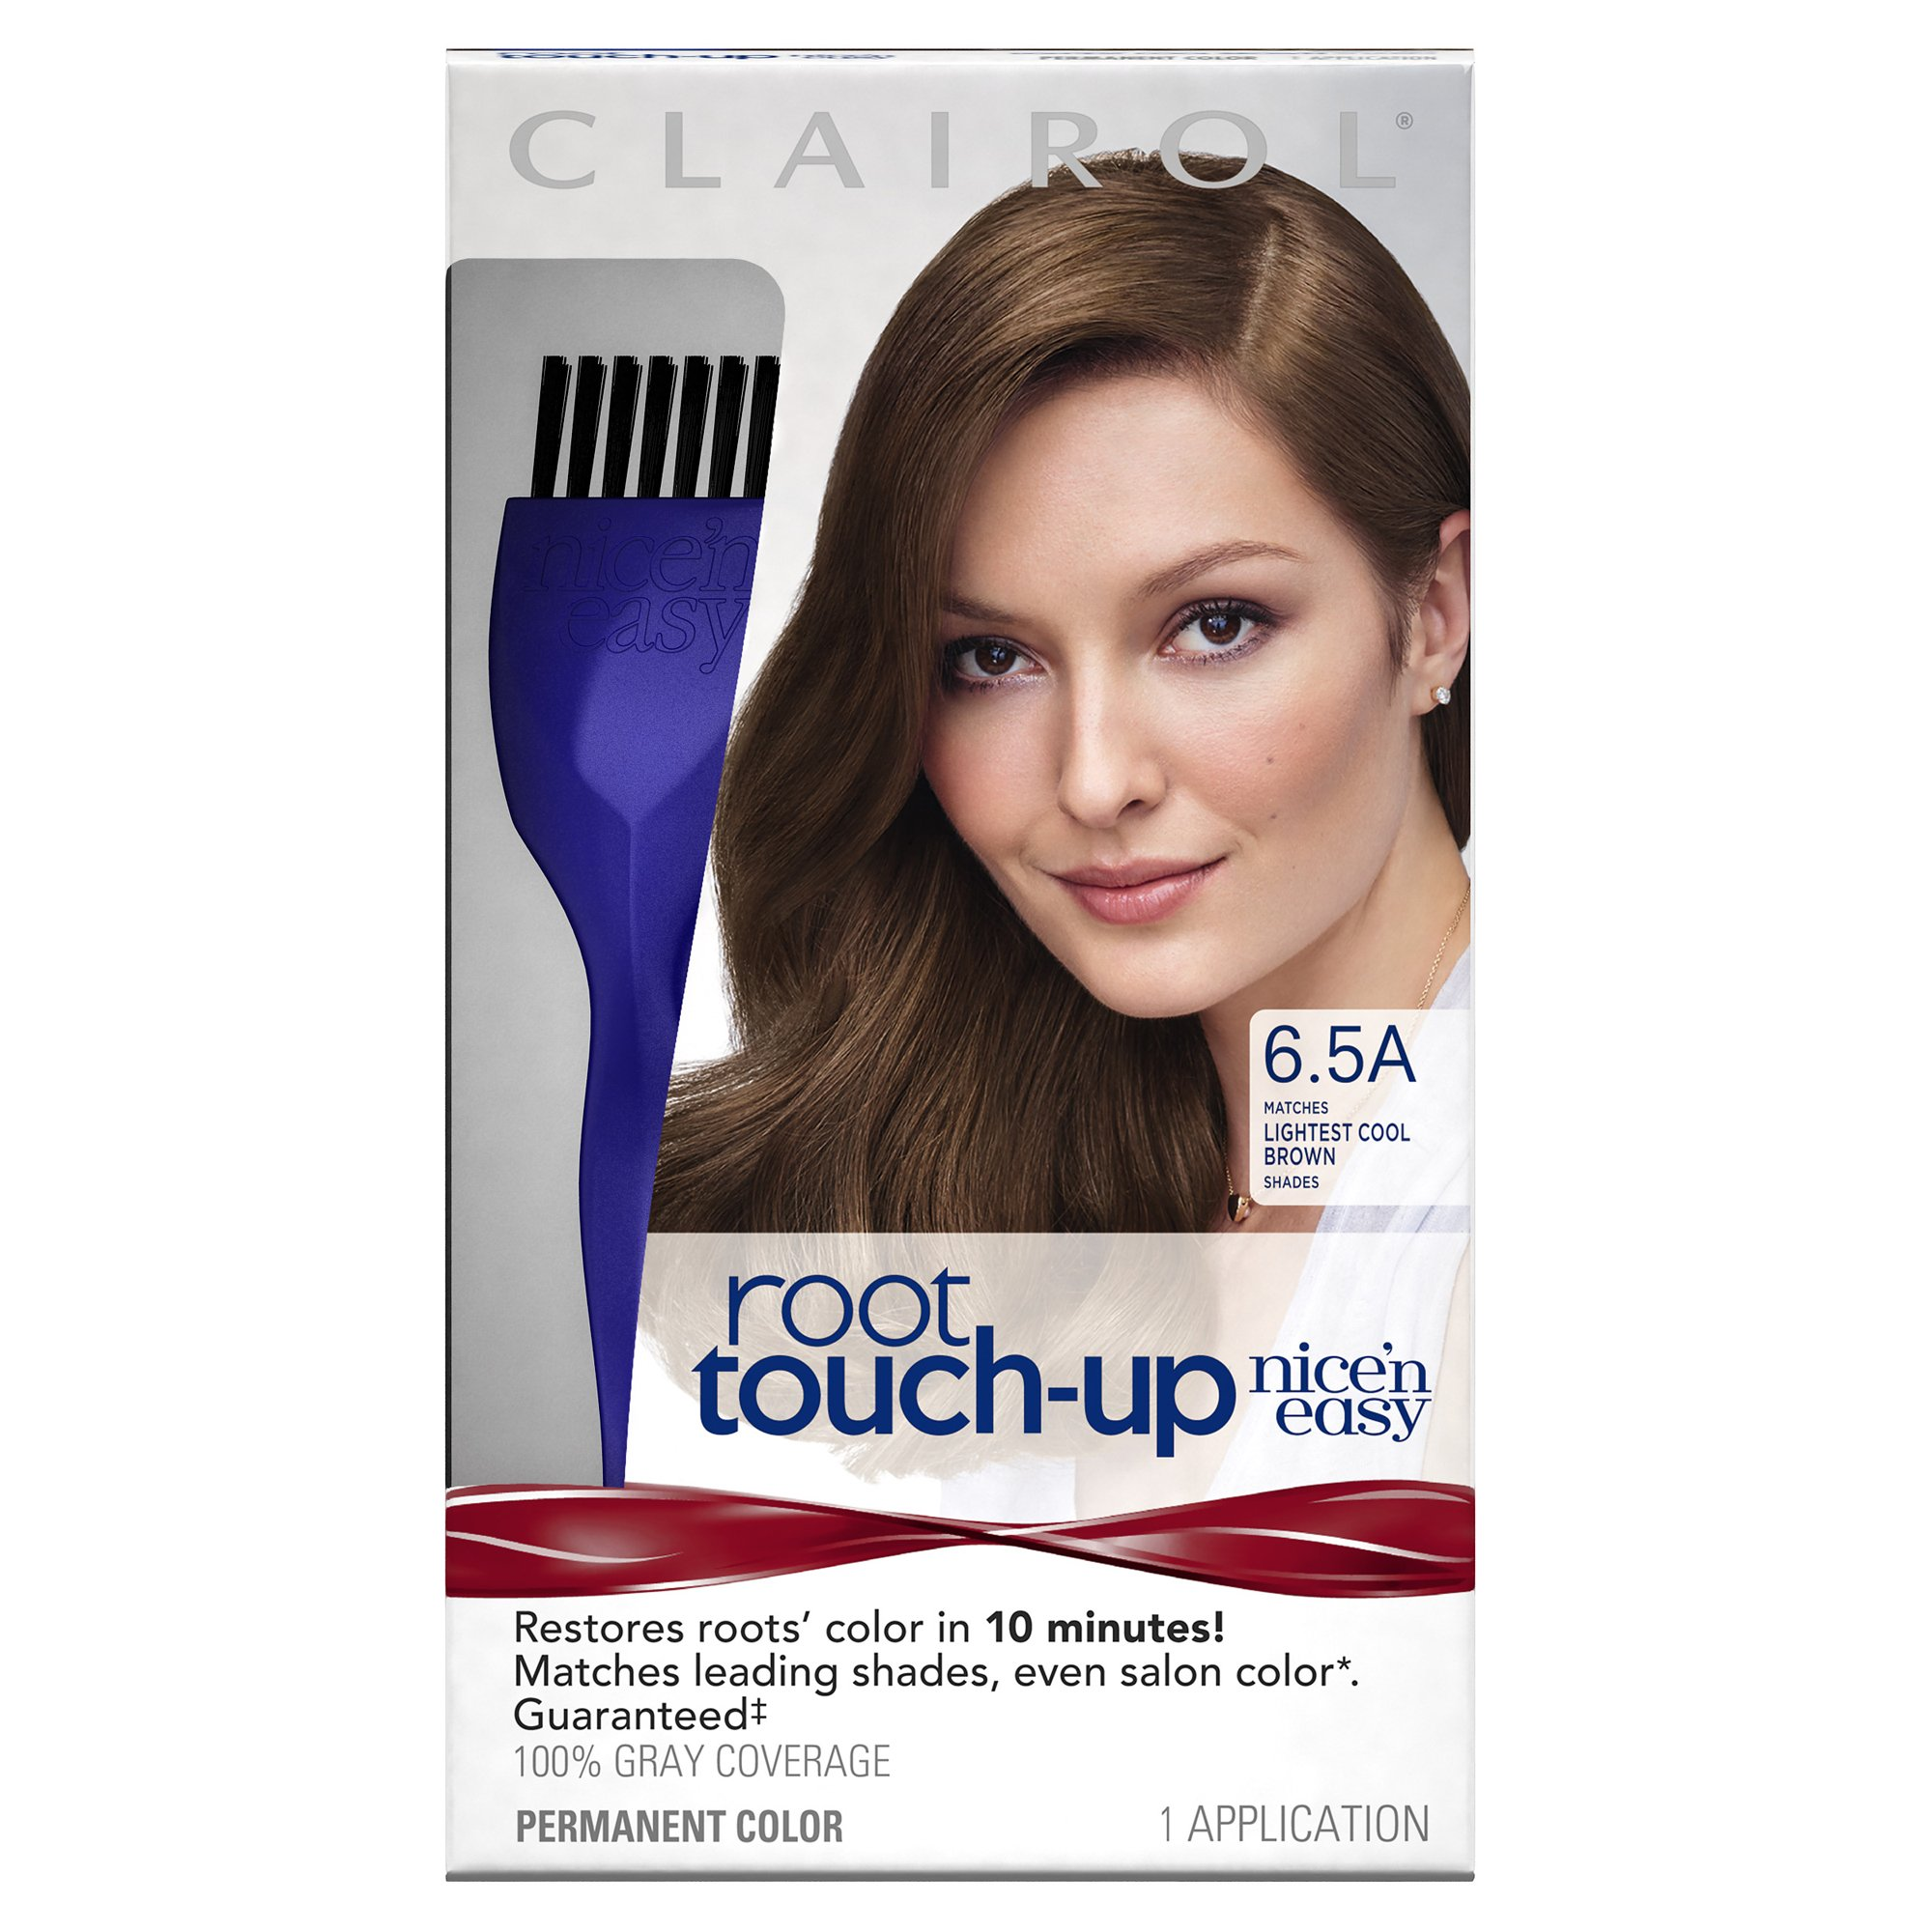 Clairol Nice 'n Easy Root Touch-Up, 6.5A Lightest Cool Brown, Permanent Hair Color, 1 Kit